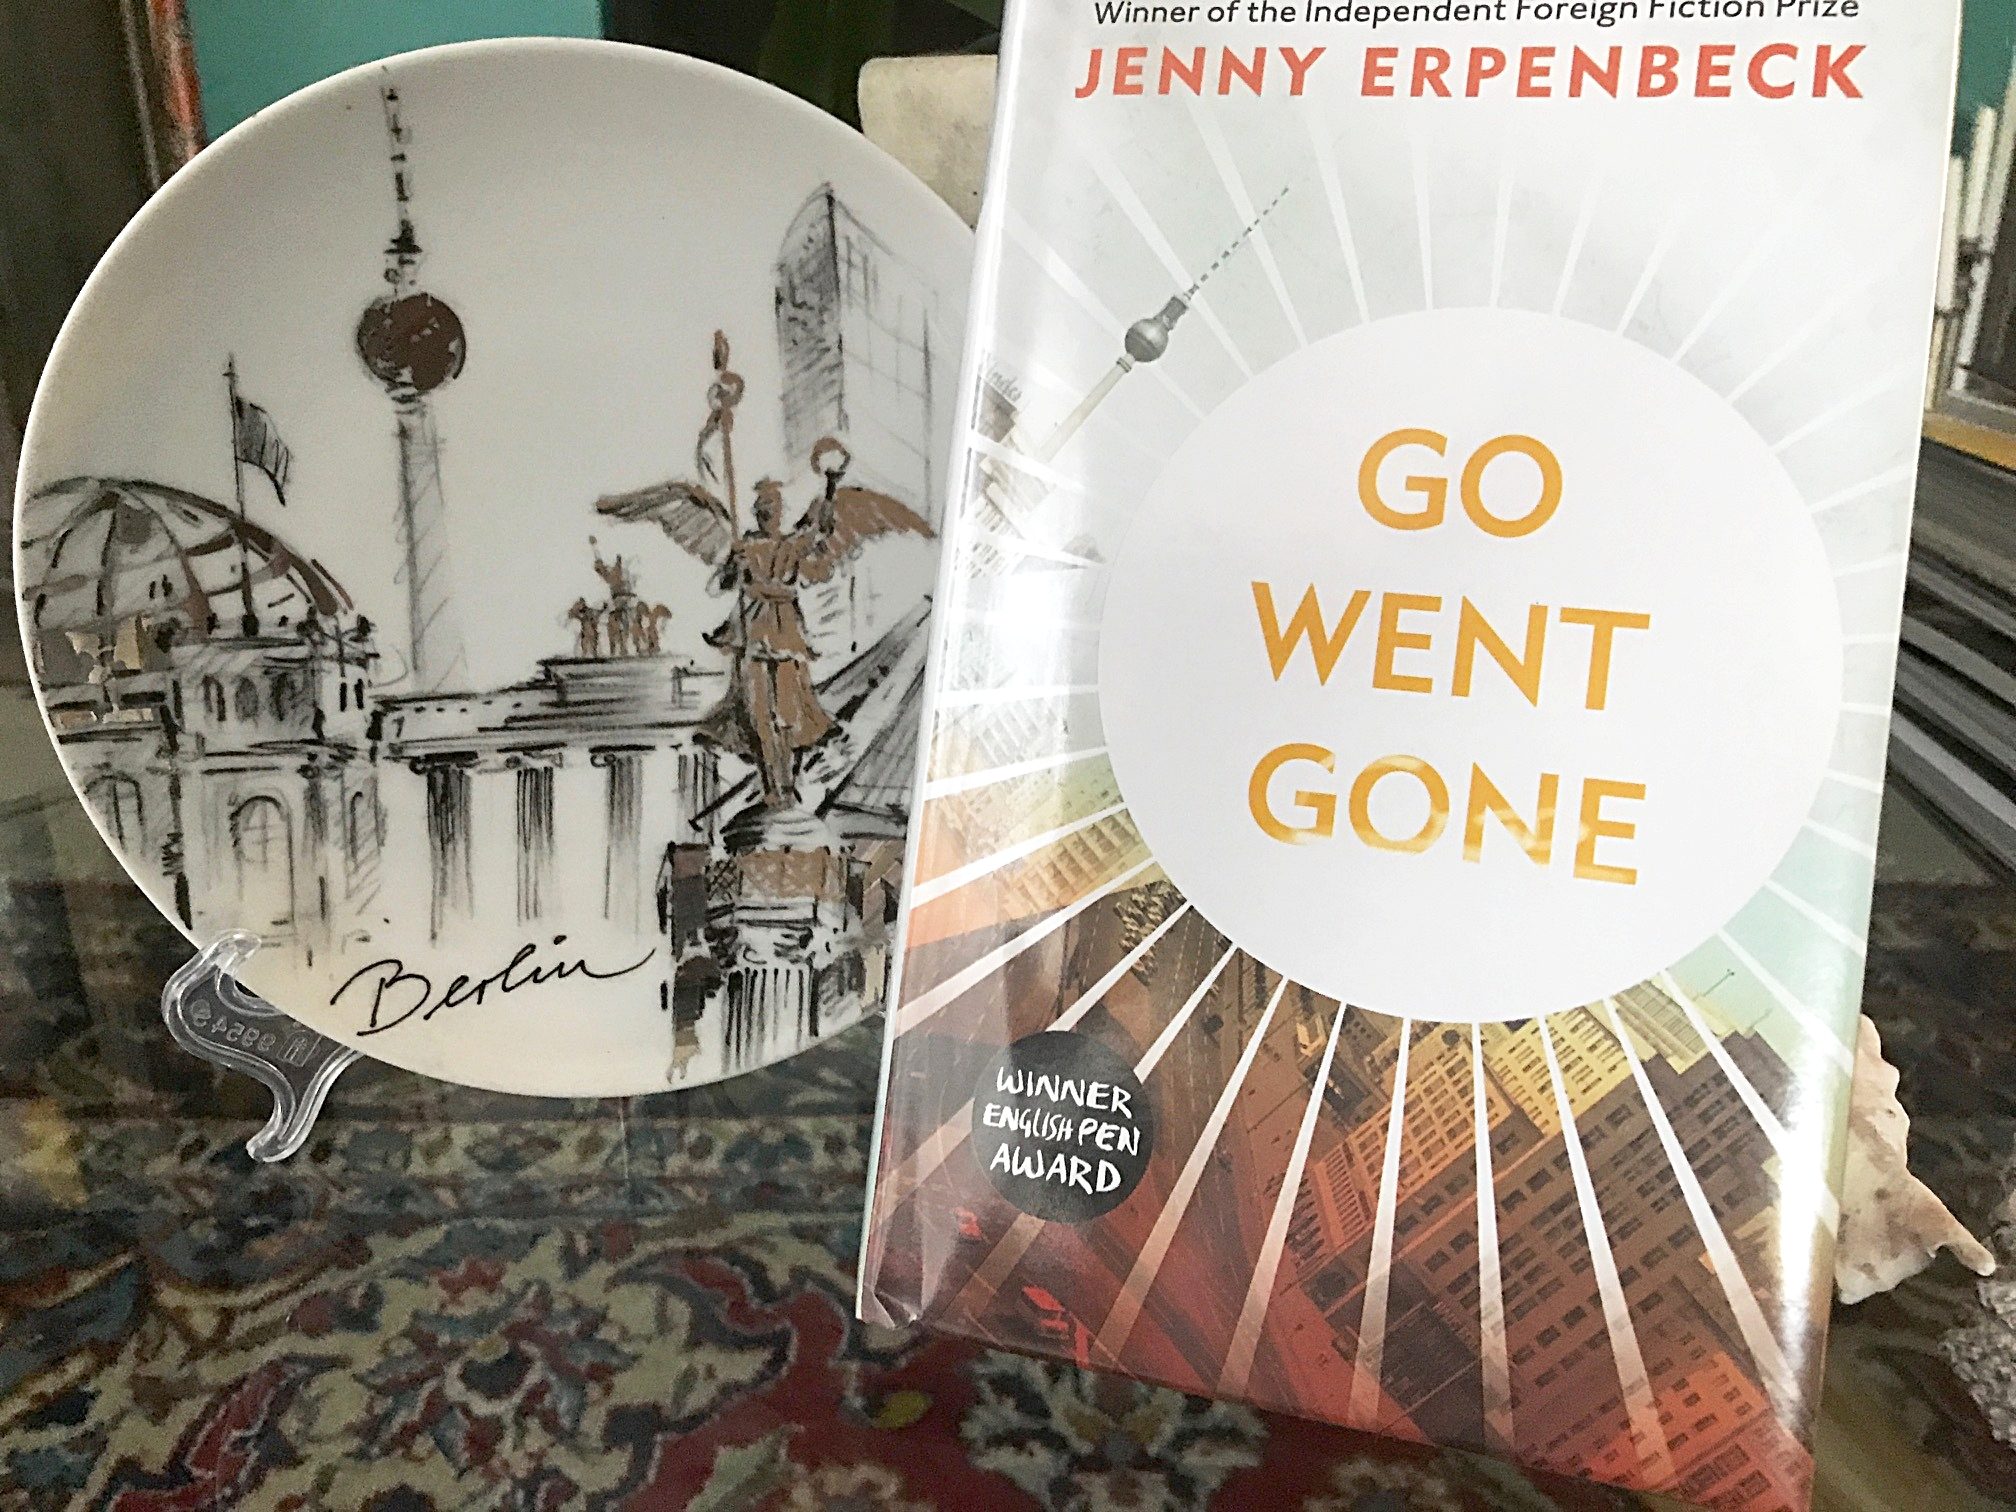 Go Went Gone cover design mirroring in many ways my KPM Berlin porcelain plate. Plate was  bought as a souvenir from KaDeWe while on a lovely Berlin holiday. The era was very different from that of the book.